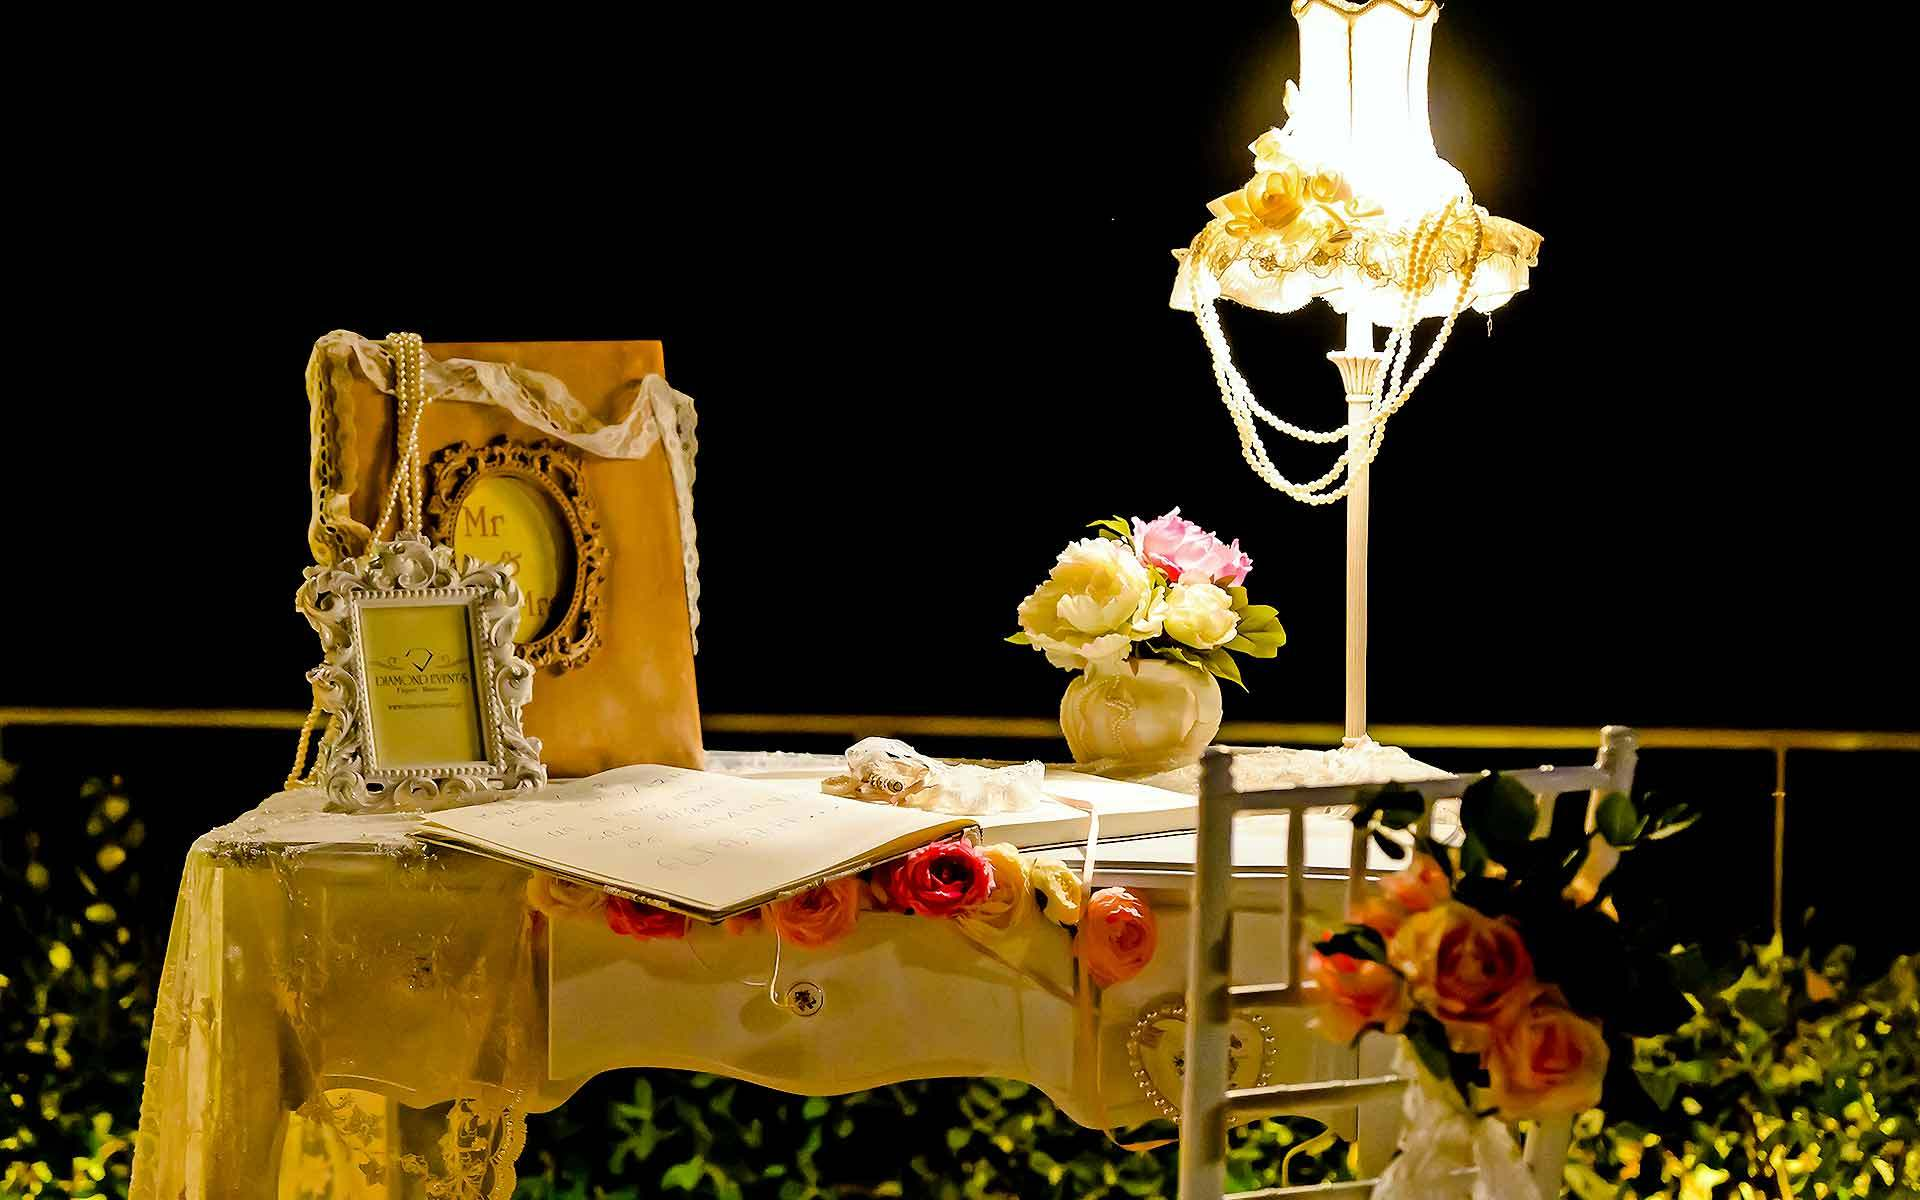 Ask-your-guests-to-write-a-message-of-well-wishes-or-perhaps-some-words-on-this-romantic-guests-book-table